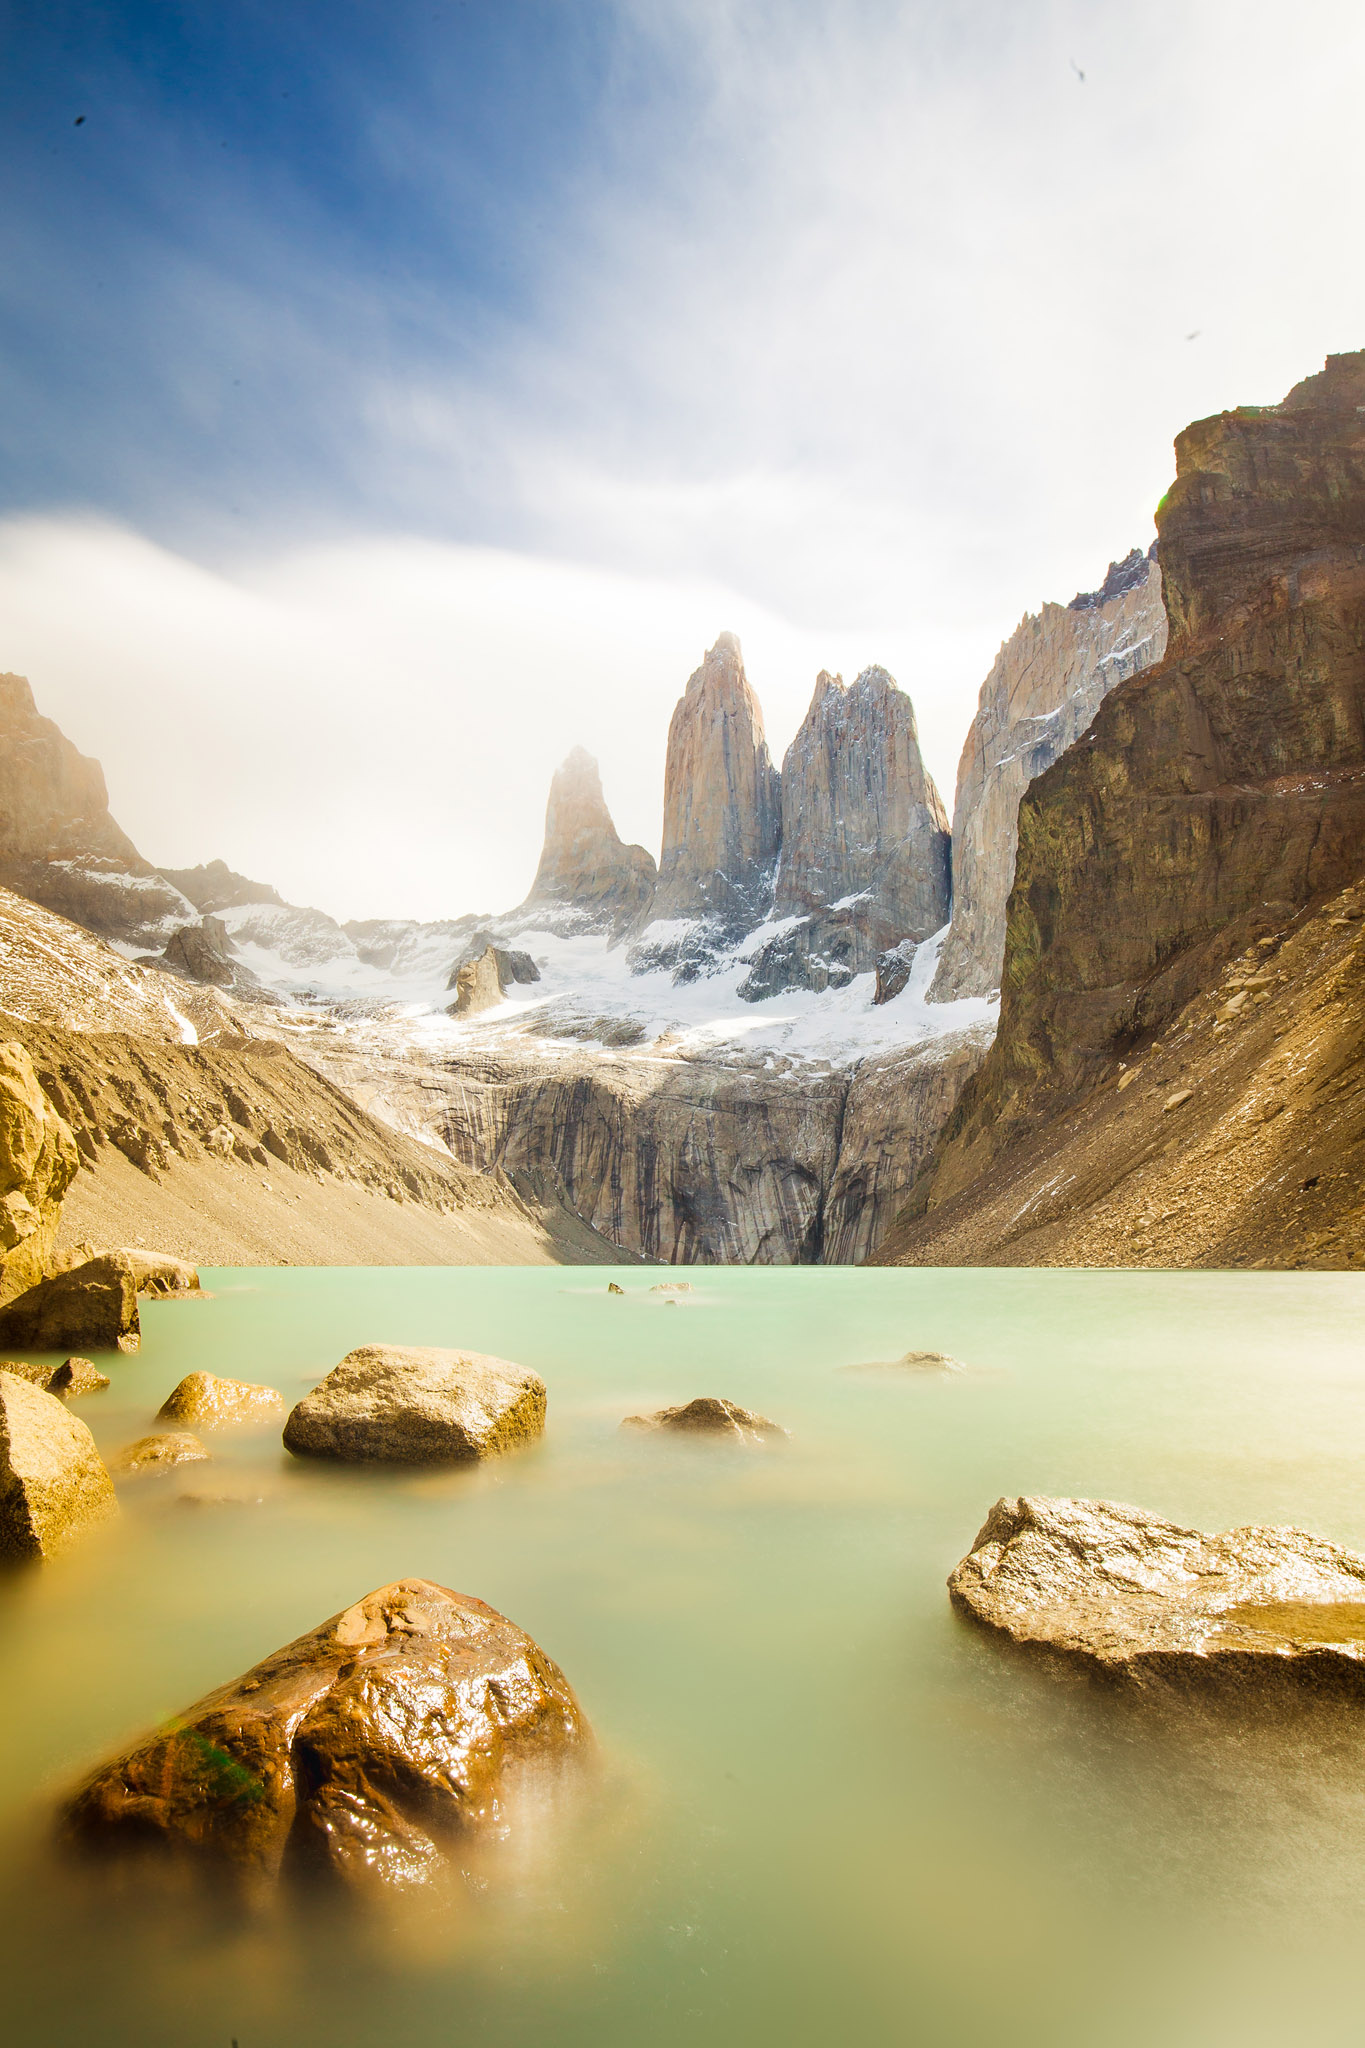 Wedding-Travellers-Overlanding-Destination-Wedding-Chile-Torres-del-Paine-Tres-Torres-Three-Towers-lake-emerald-Patagonia